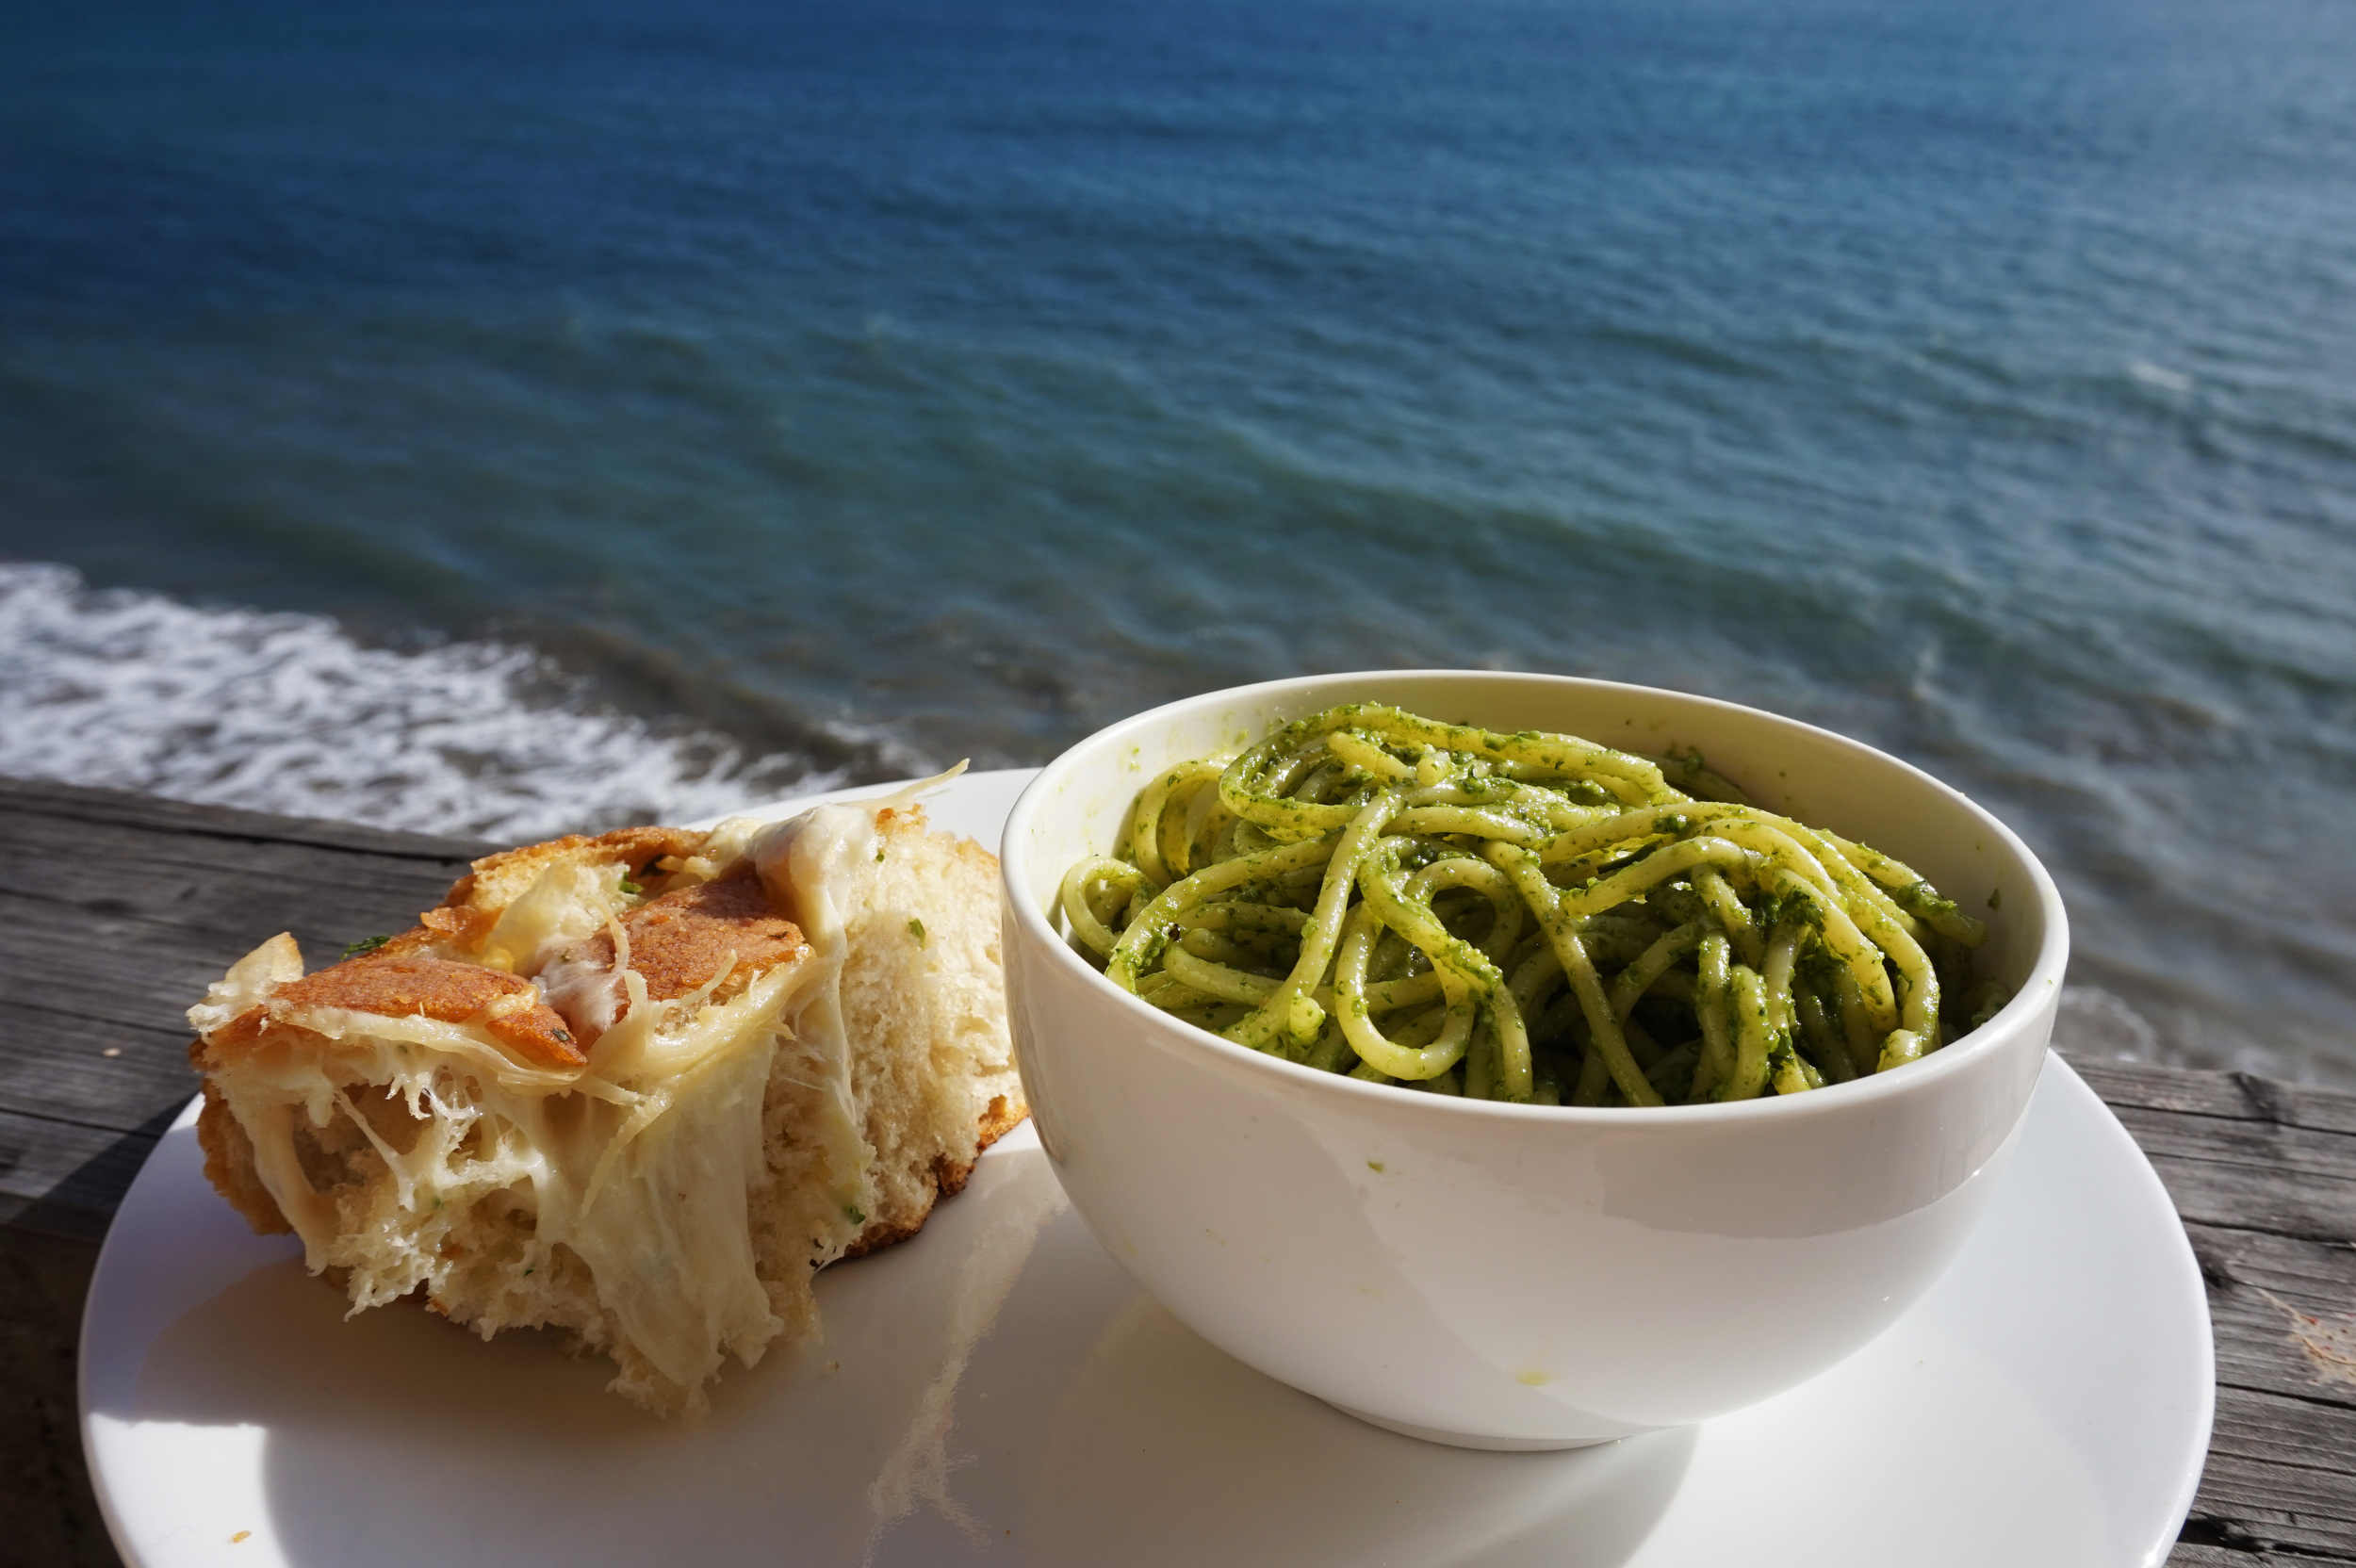 When you do a photo shoot with your pasta and garlic bread oceanside because you can